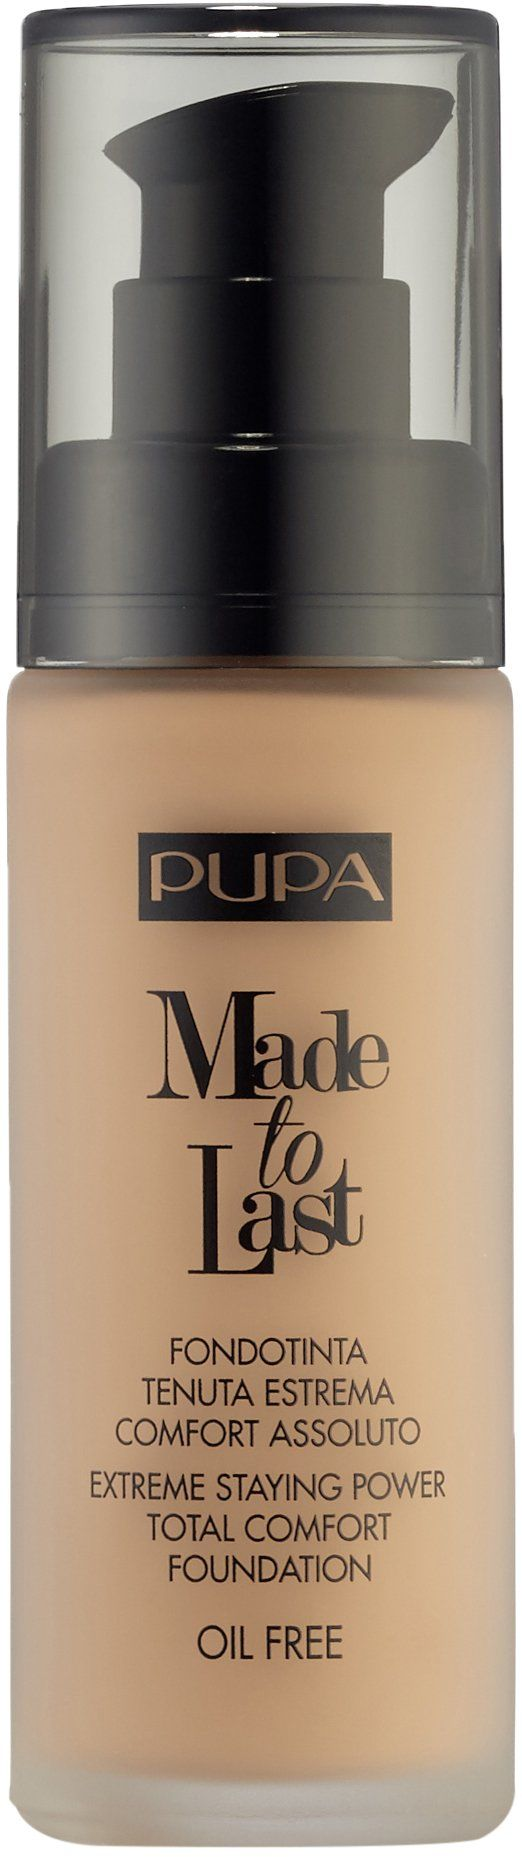 Pupa Made To Last Foundation 050 Sand